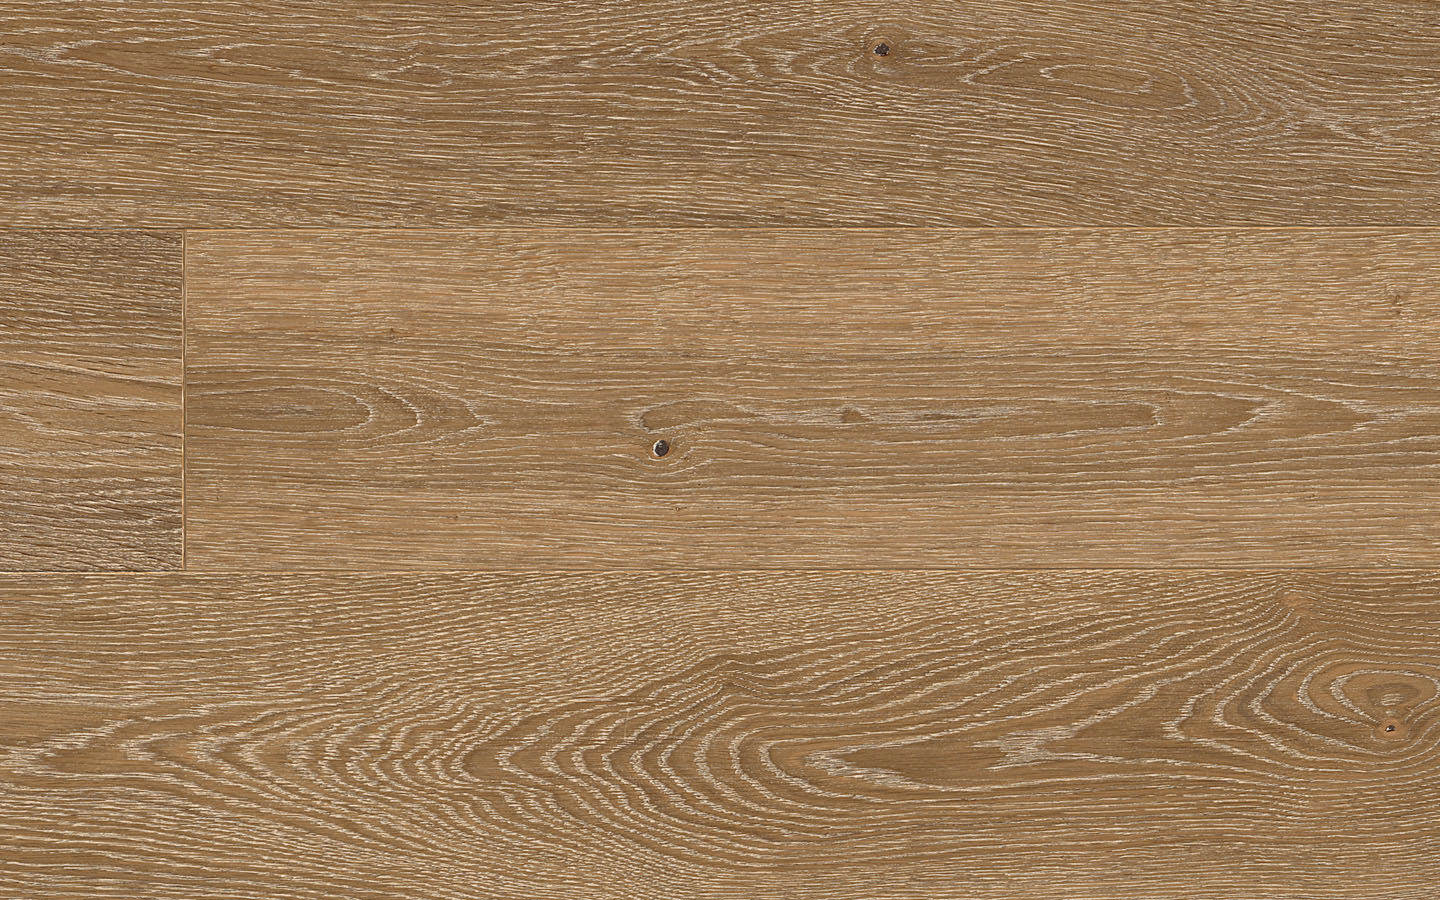 Château by adler - Oak Bordeaux standard wire brushed color oiled - 19 x 180-350 x 1800-5000 mm